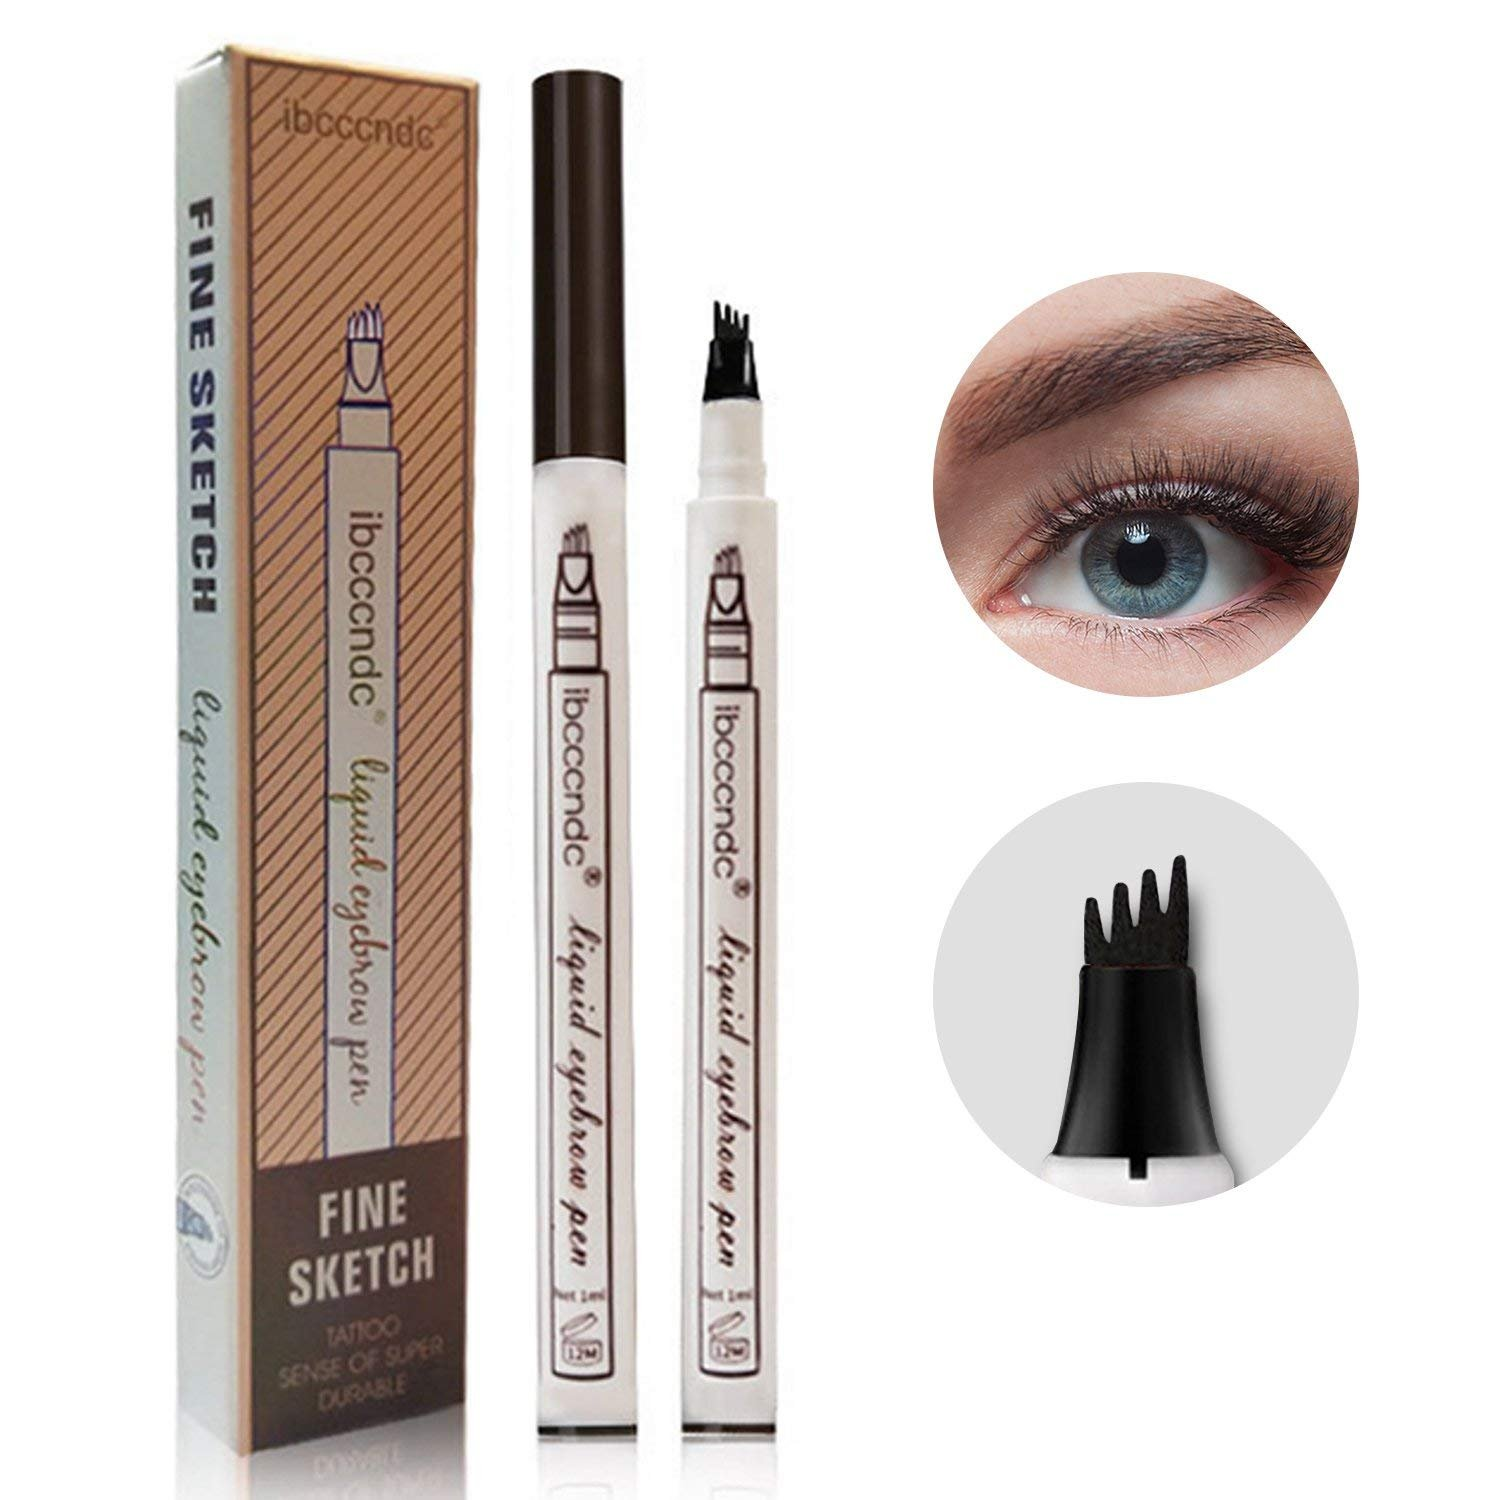 Tattoo Eyebrow Pen Waterproof Ink Gel Tint with Four Tips, Long Lasting Smudge-Proof Natural Hair-Like Defined Brows All Day for Eye Makeup(Chestnut)